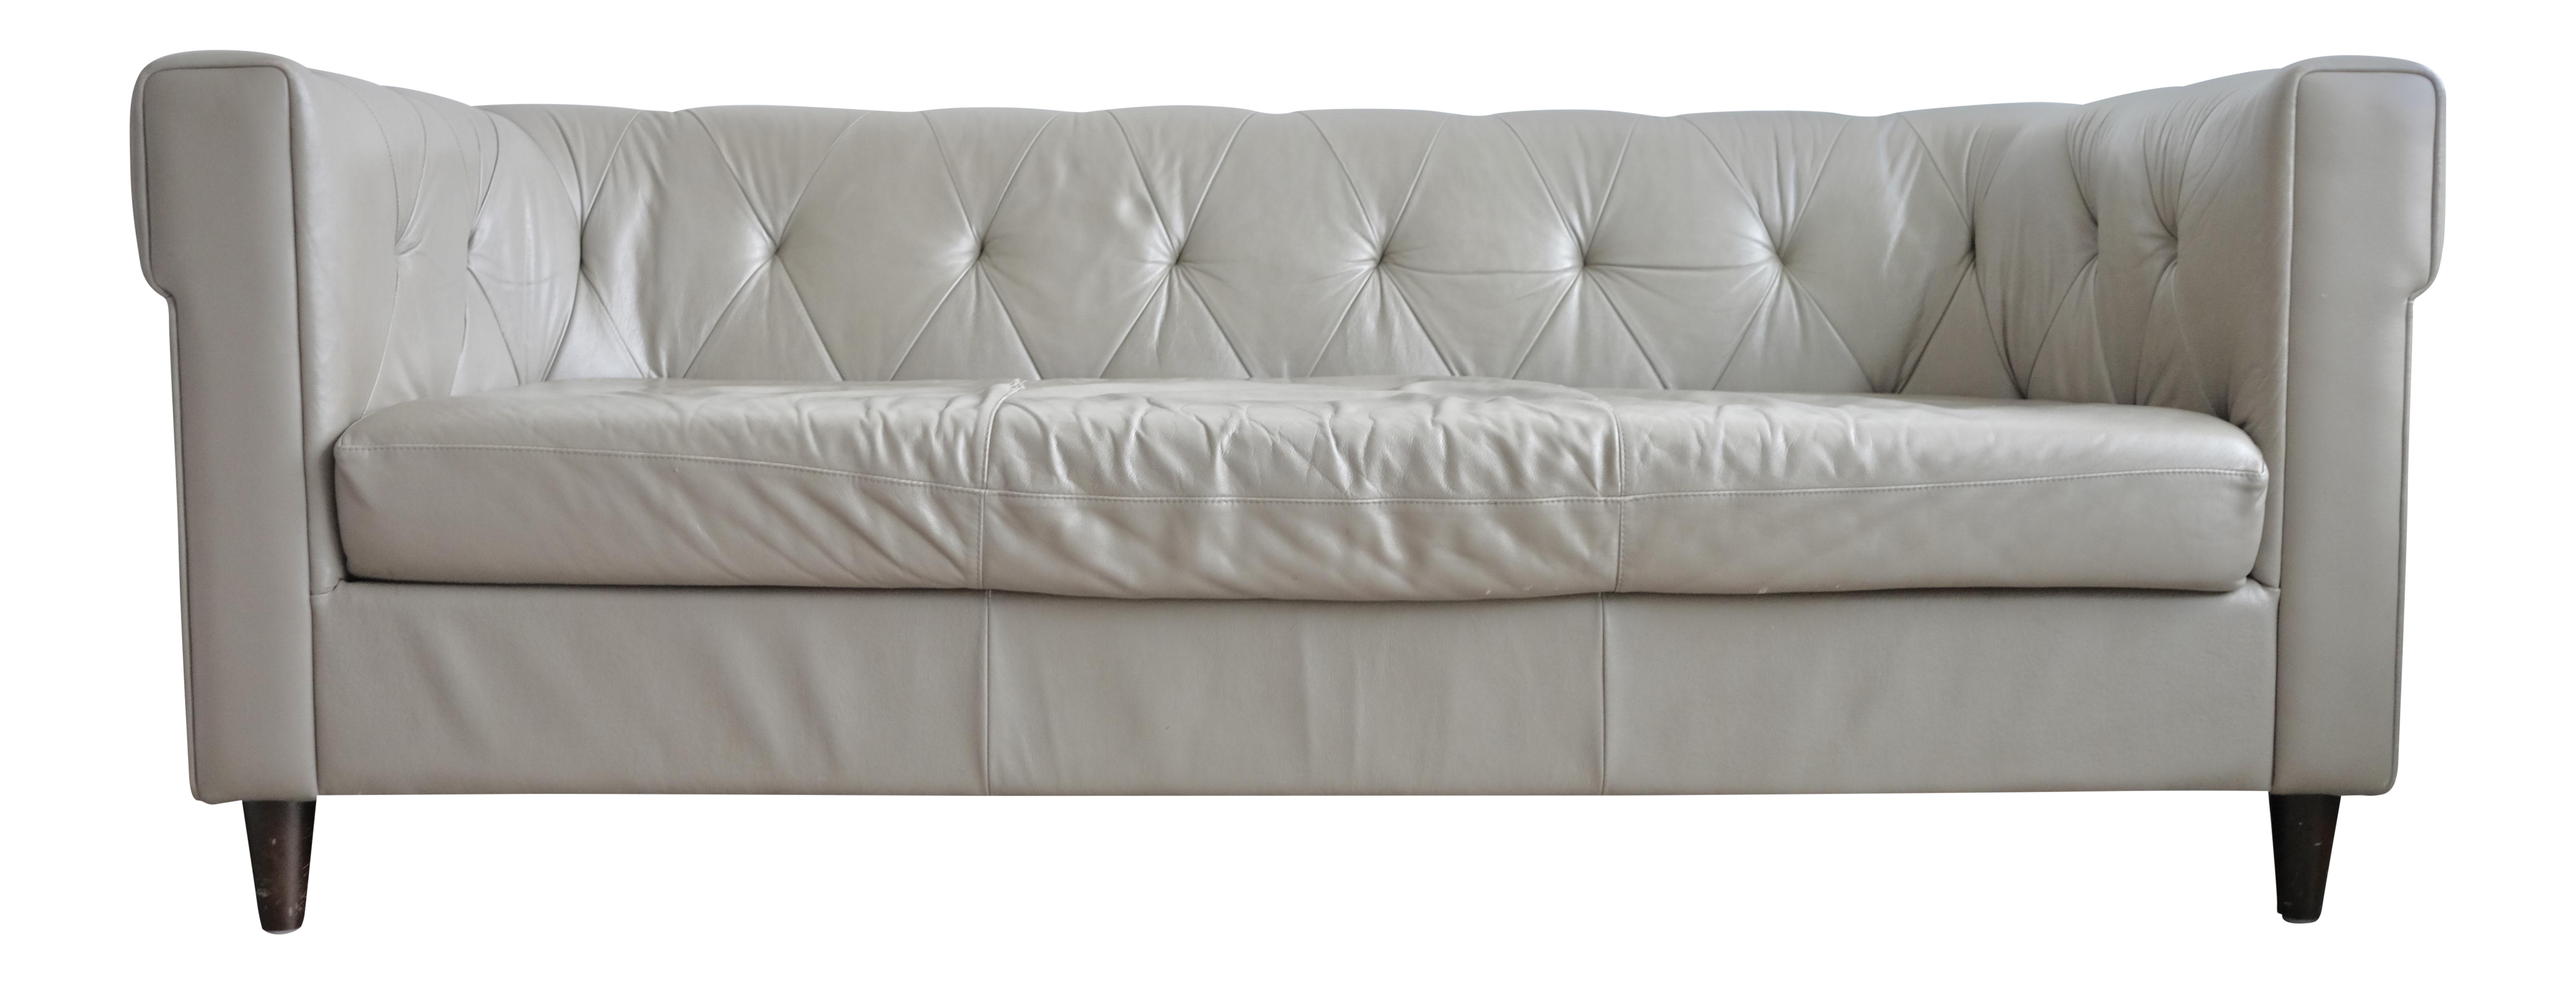 west elm chester tufted leather sofa chairish